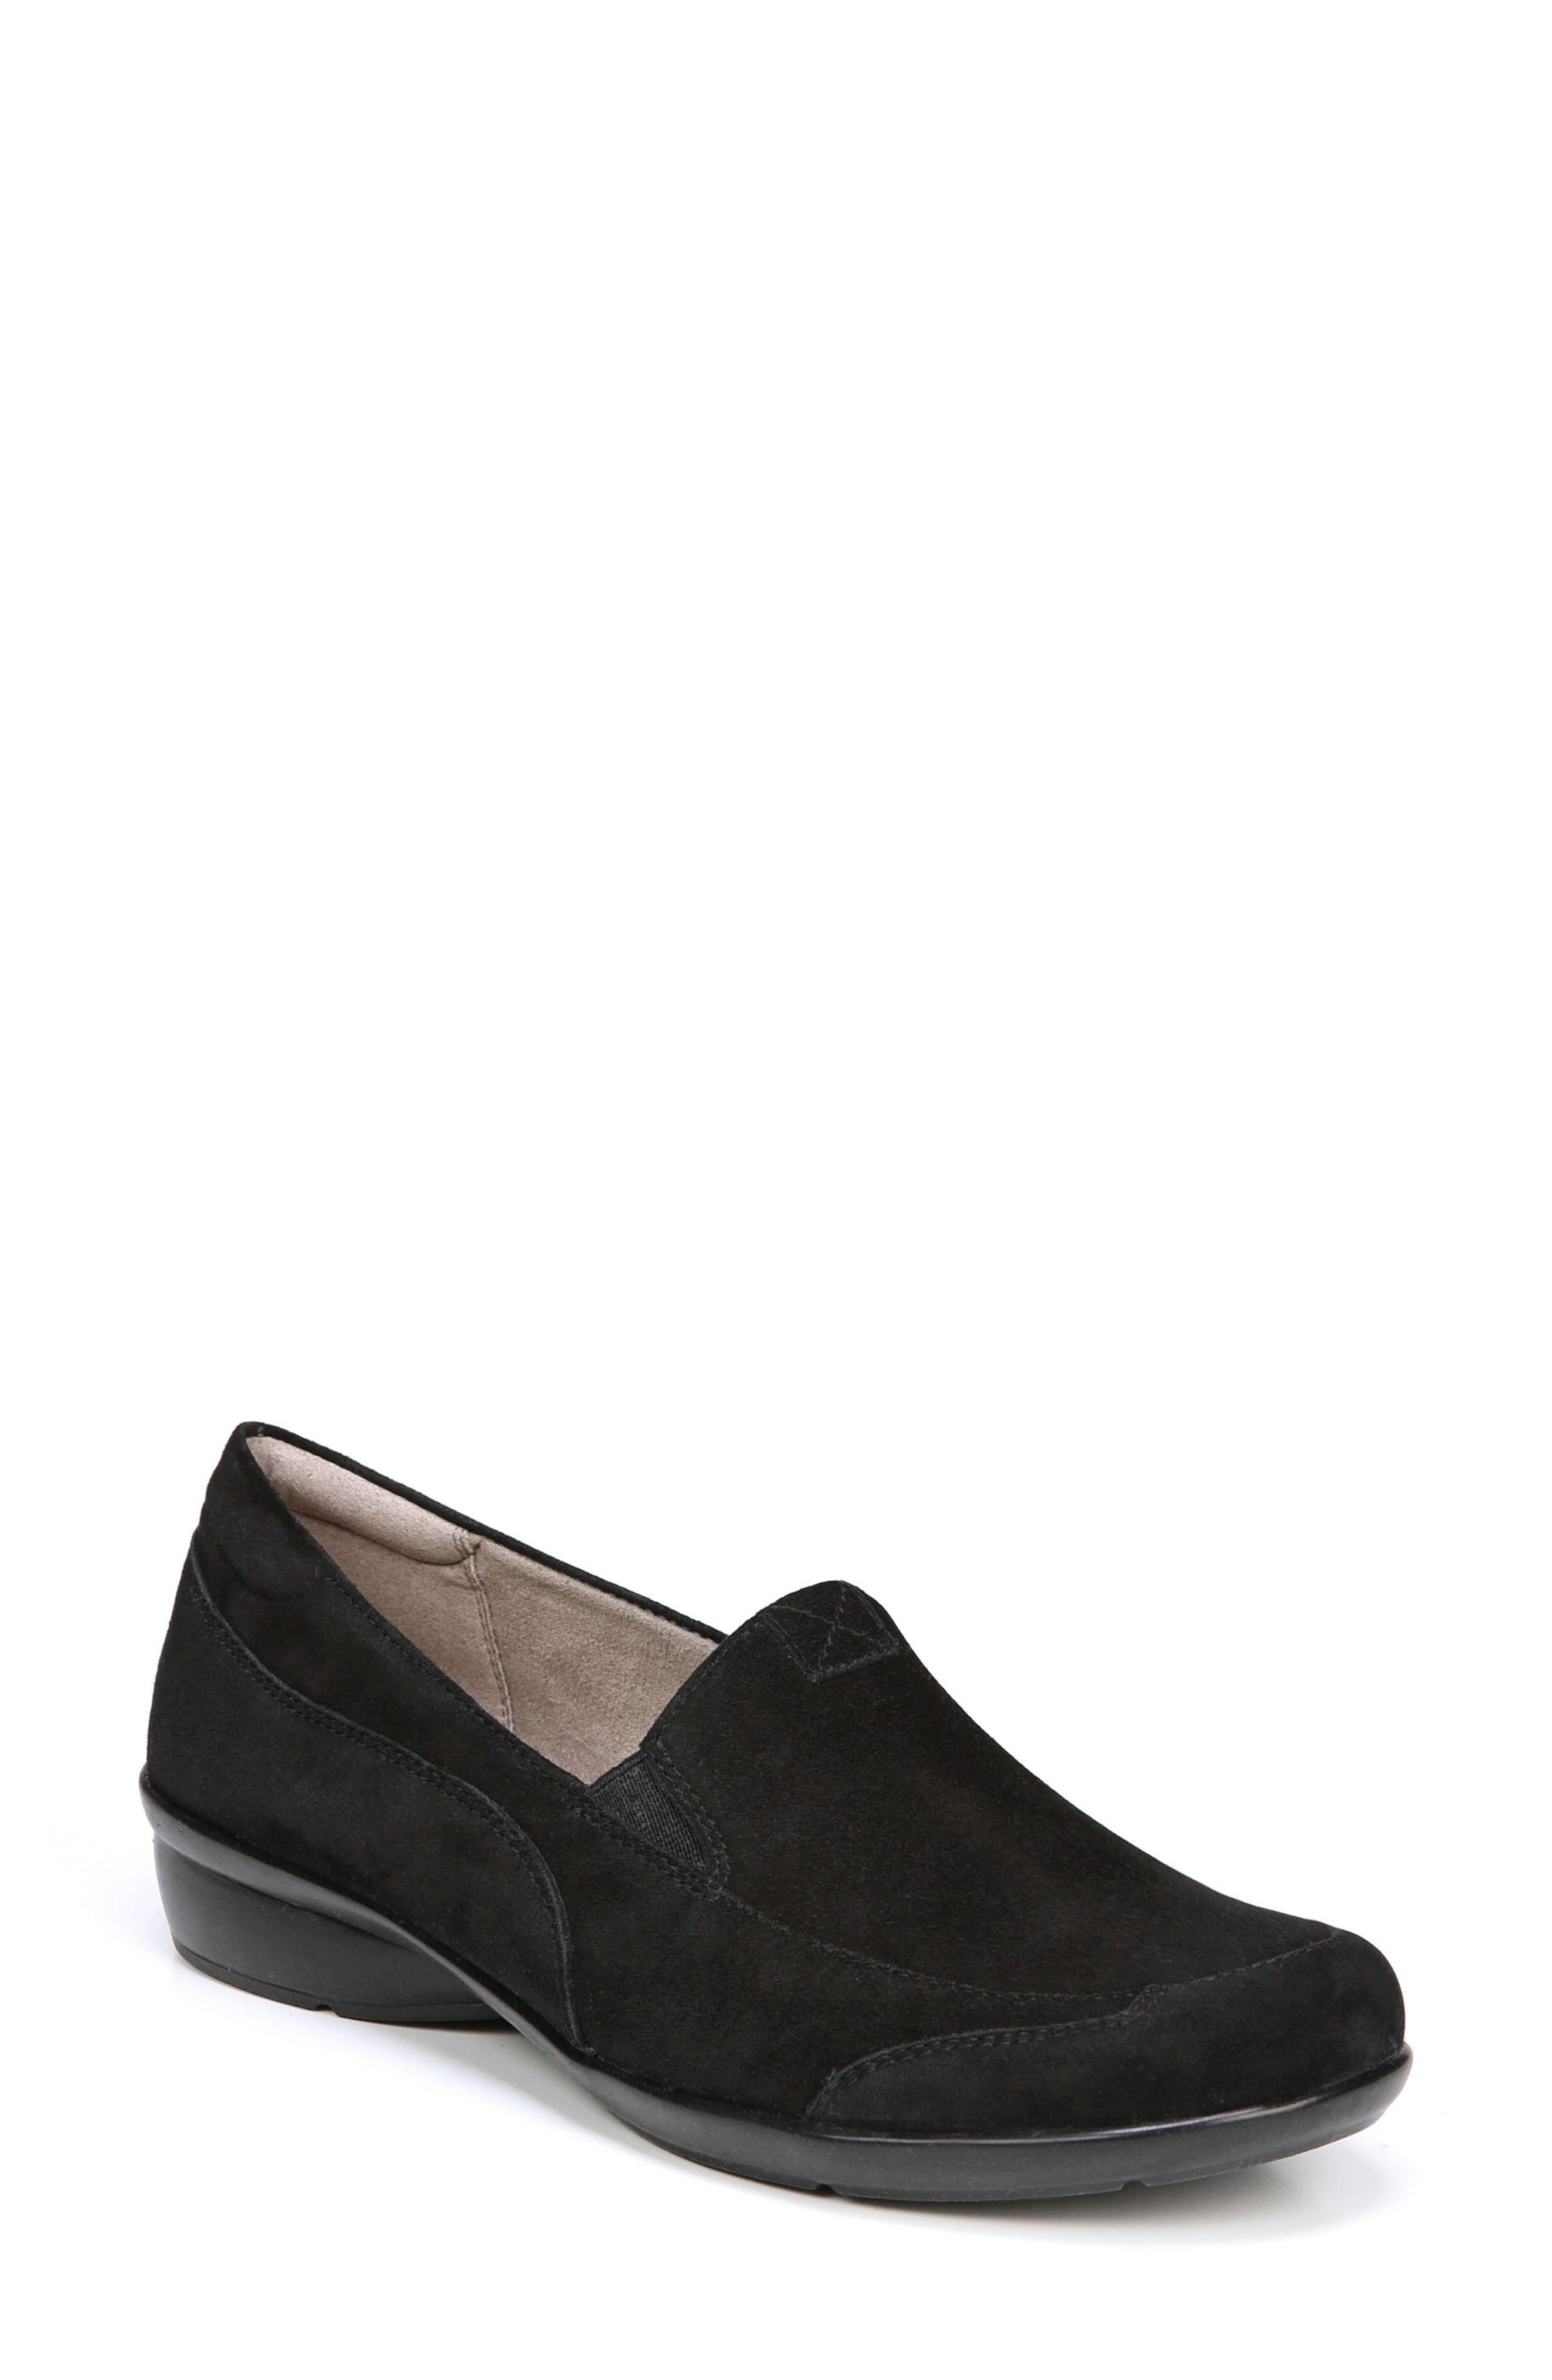 'Channing' Loafer,                             Main thumbnail 1, color,                             BLACK SUEDE